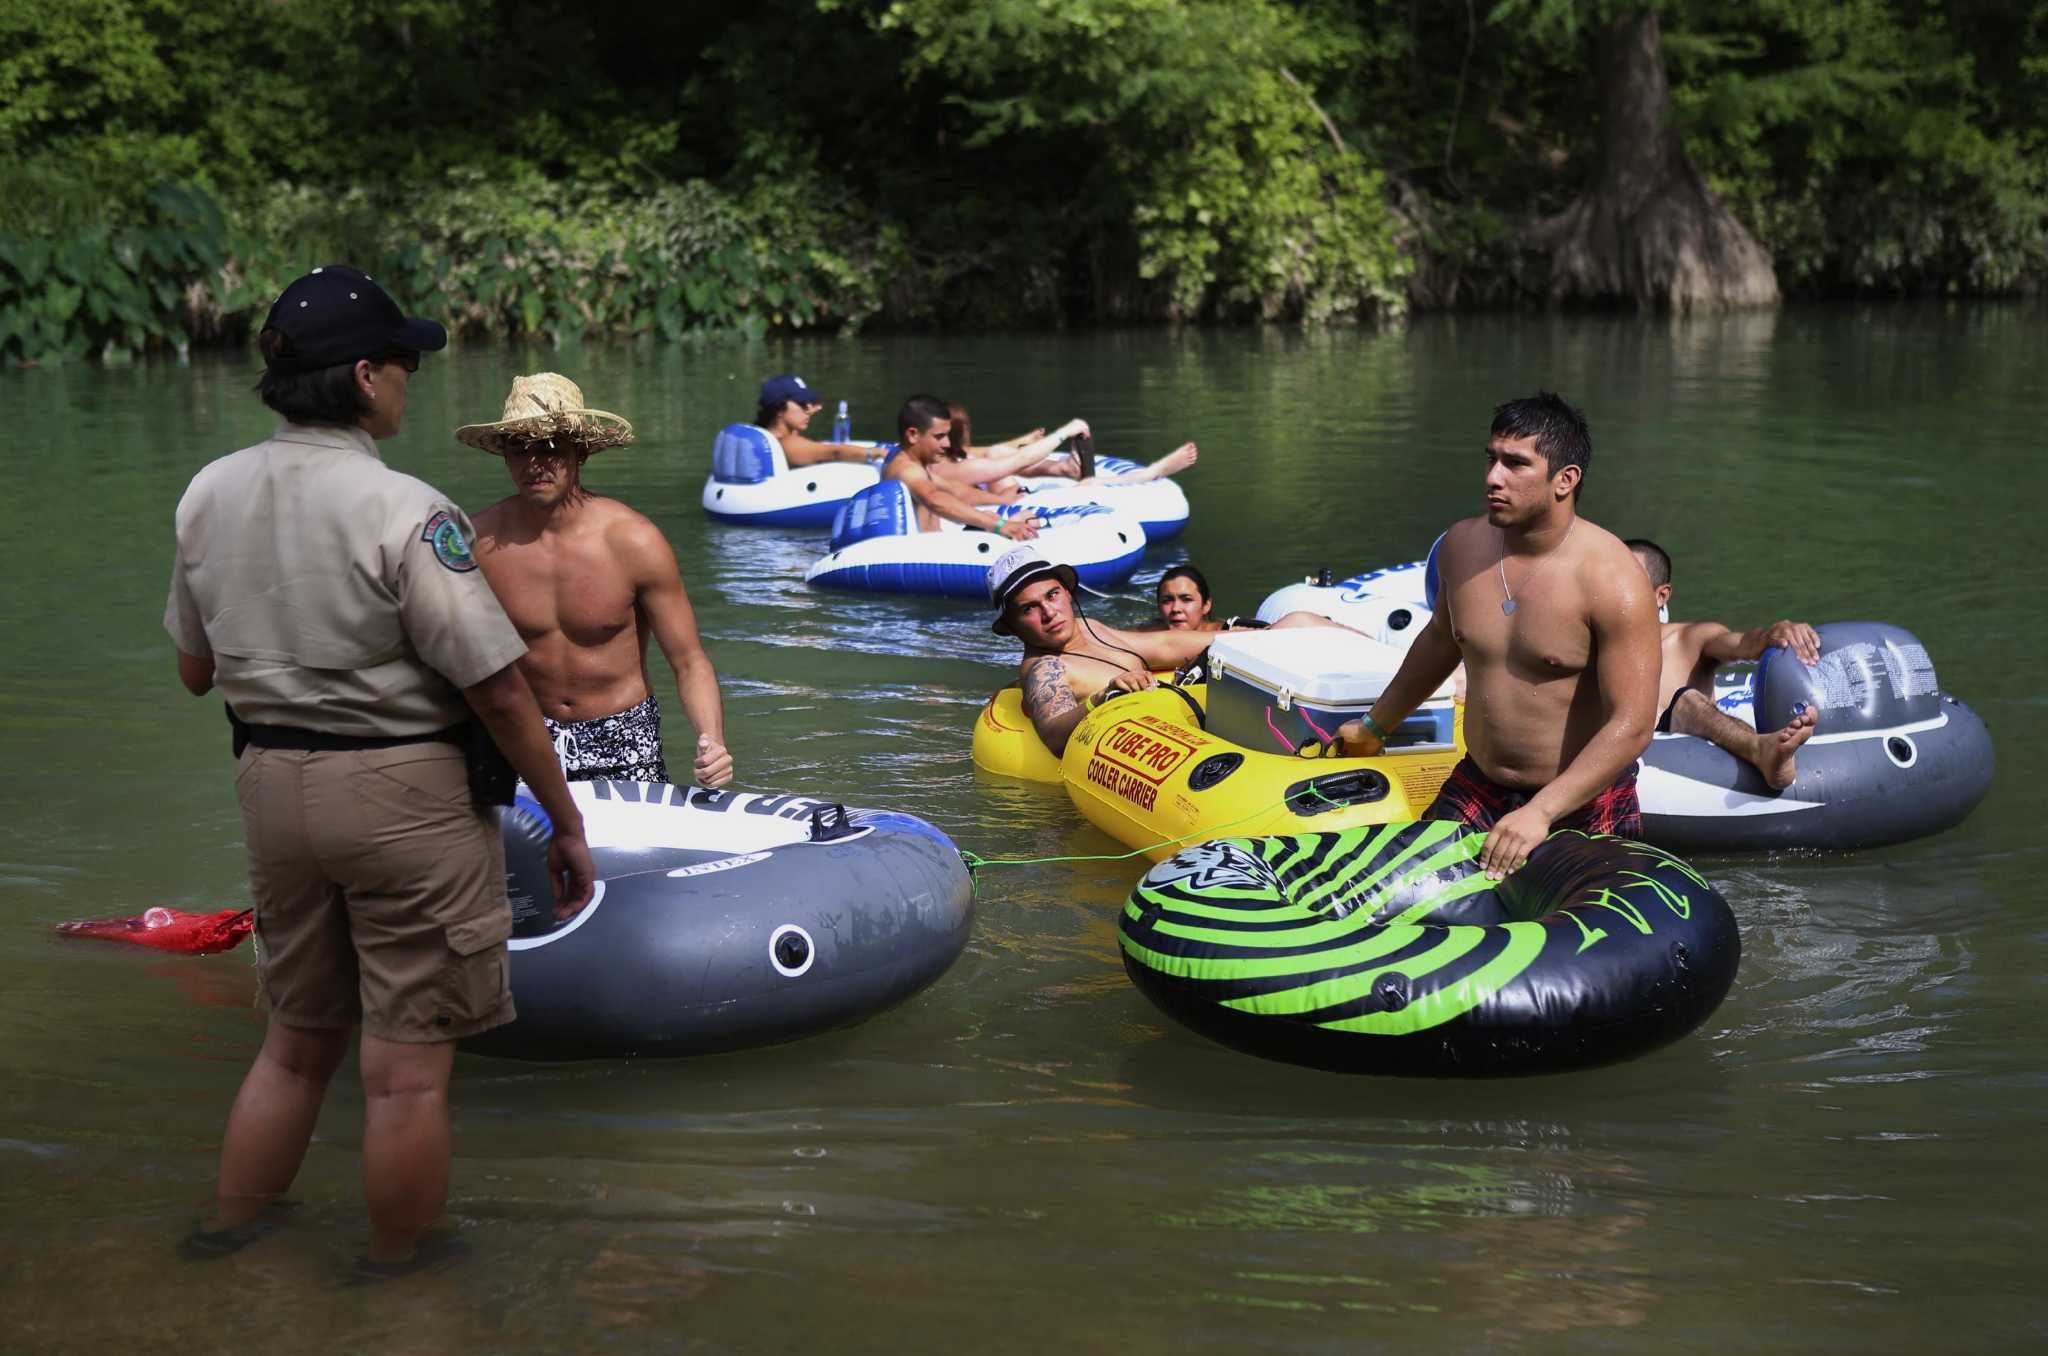 Colleges In Austin Tx >> San Marcos River tube renters agree to more rules, monitoring - ExpressNews.com